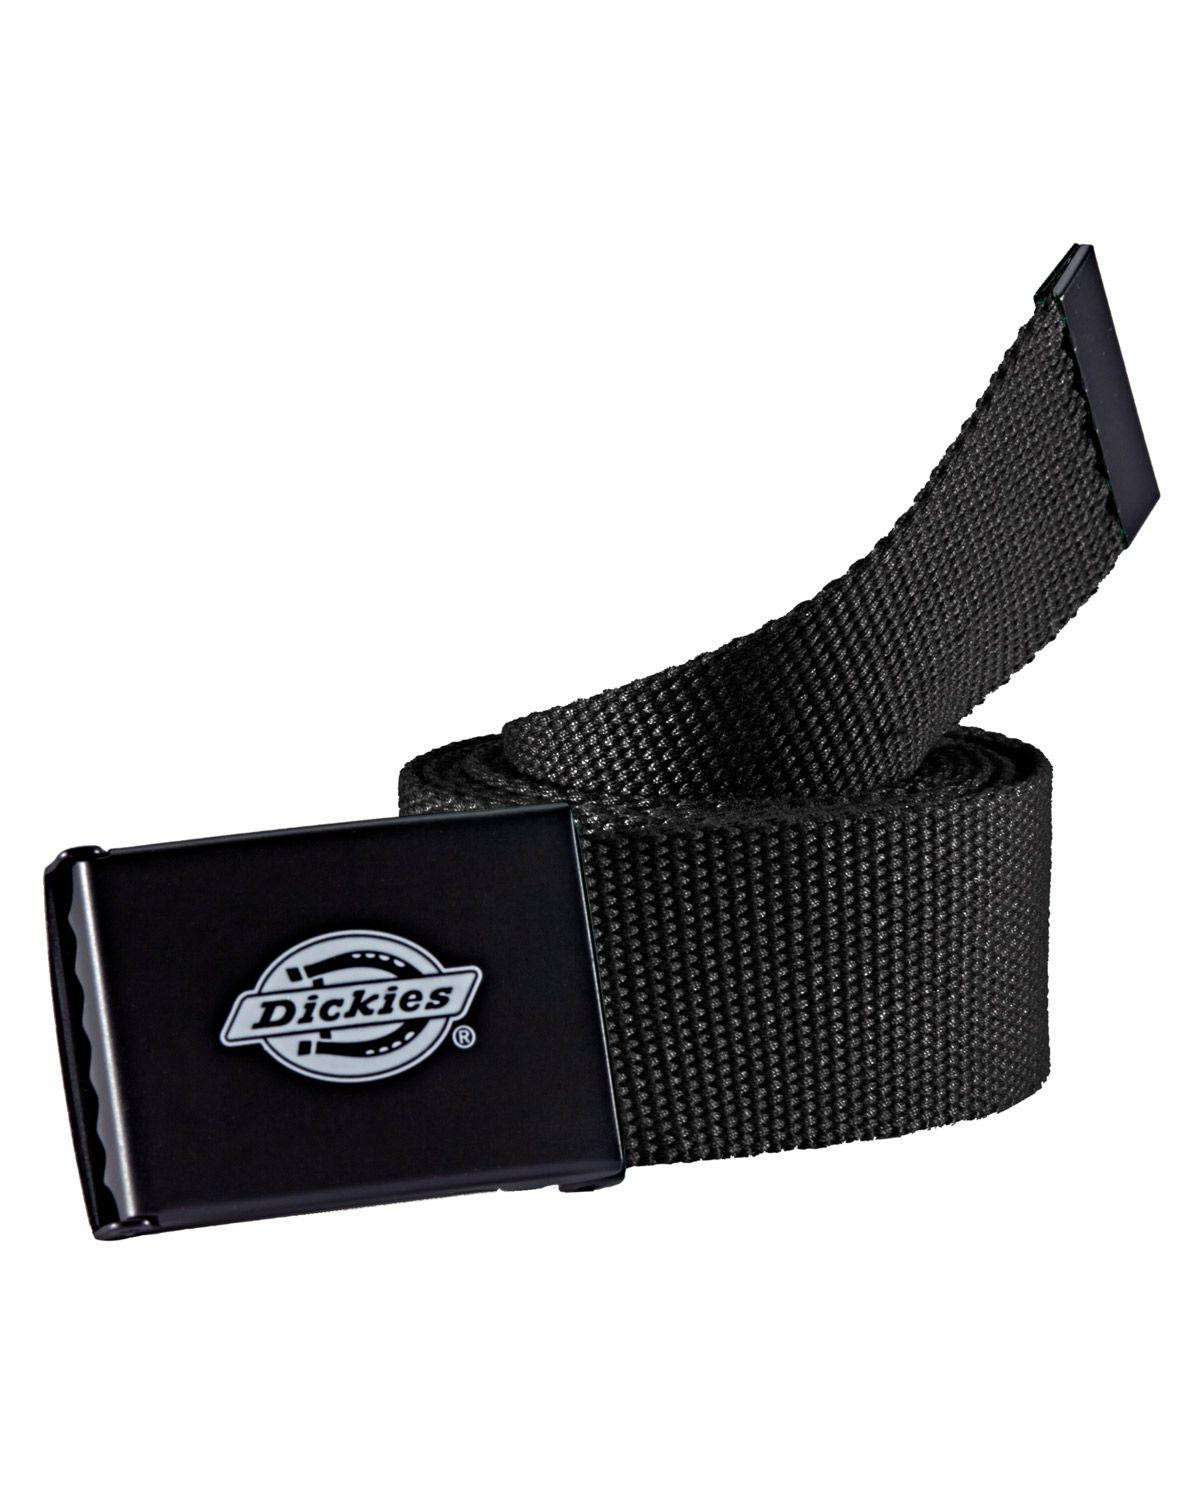 Image of   Dickies Orcutt Rollerbuckle Bælte (Sort, One Size)